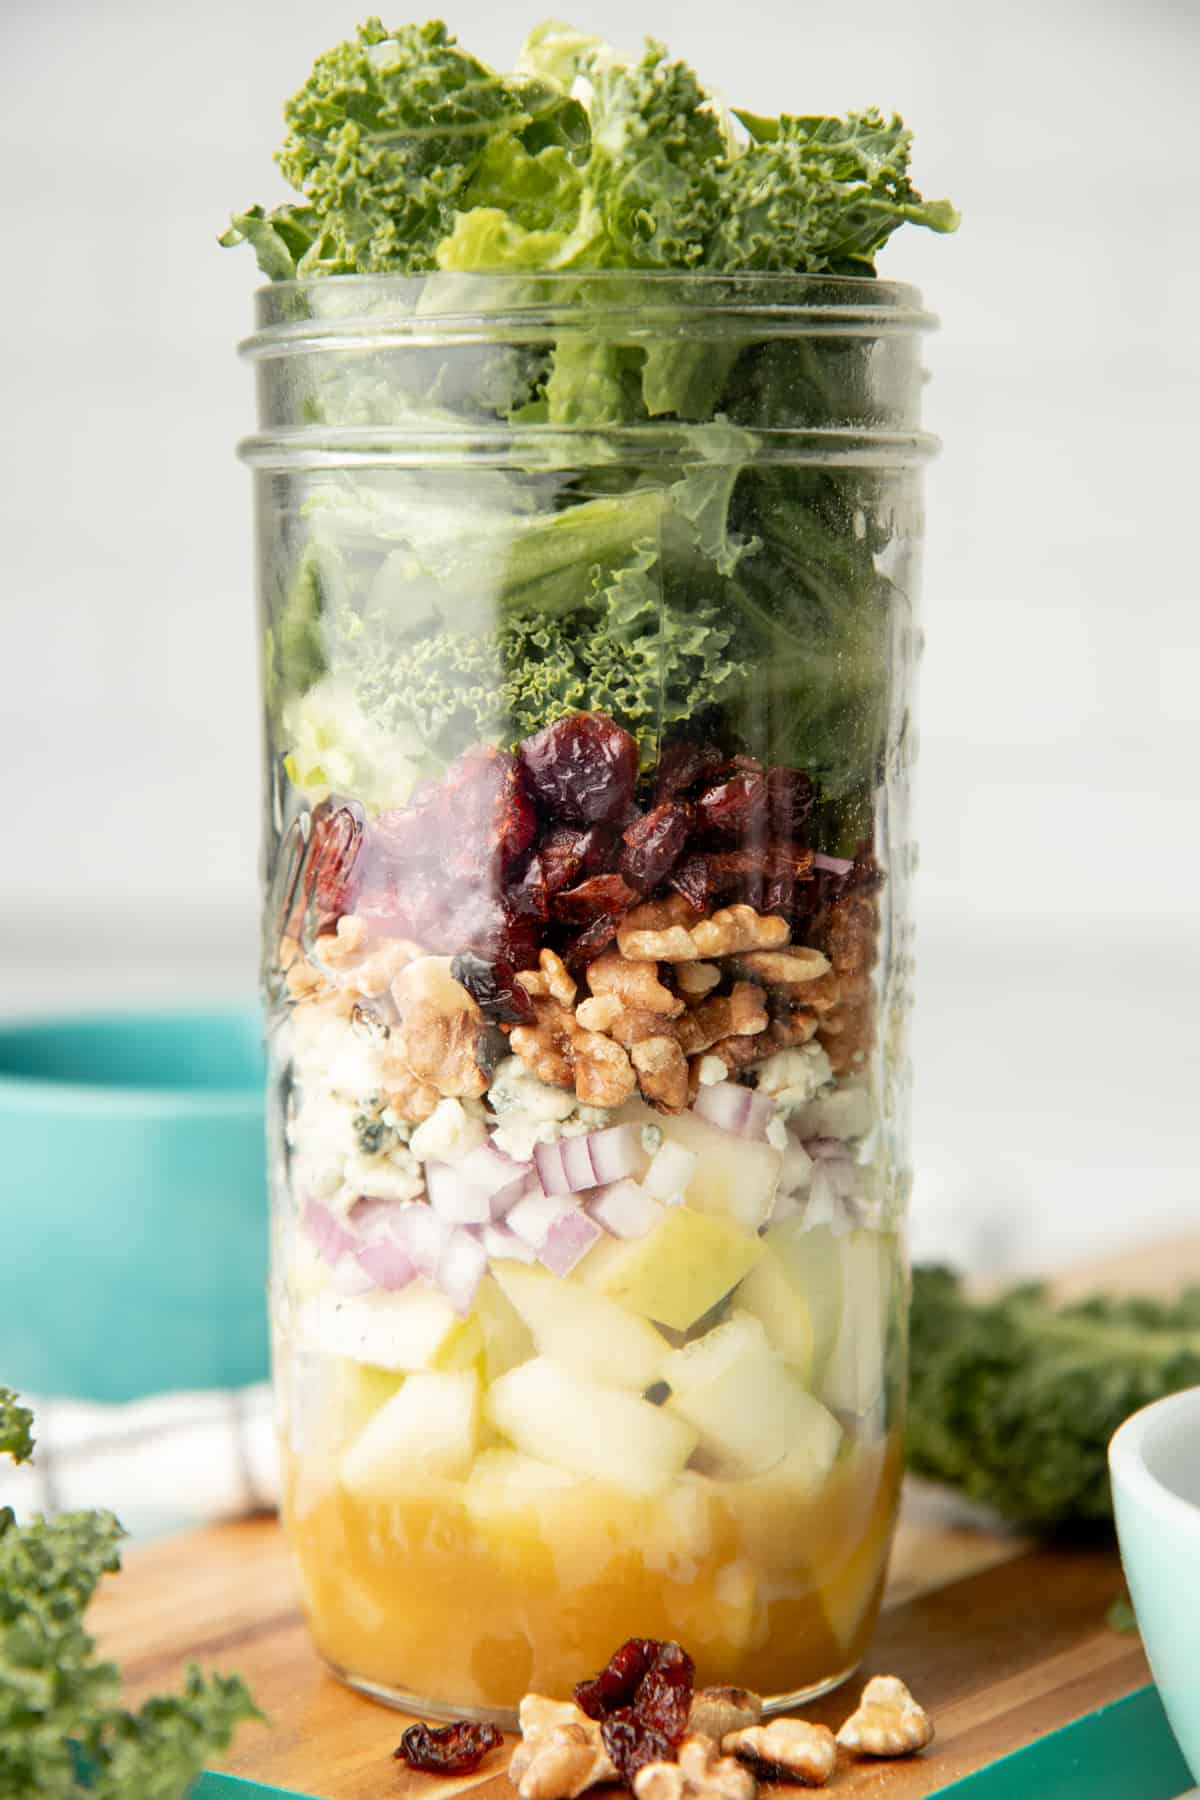 Ingredients for apple walnut salad are layered in a mason jar.